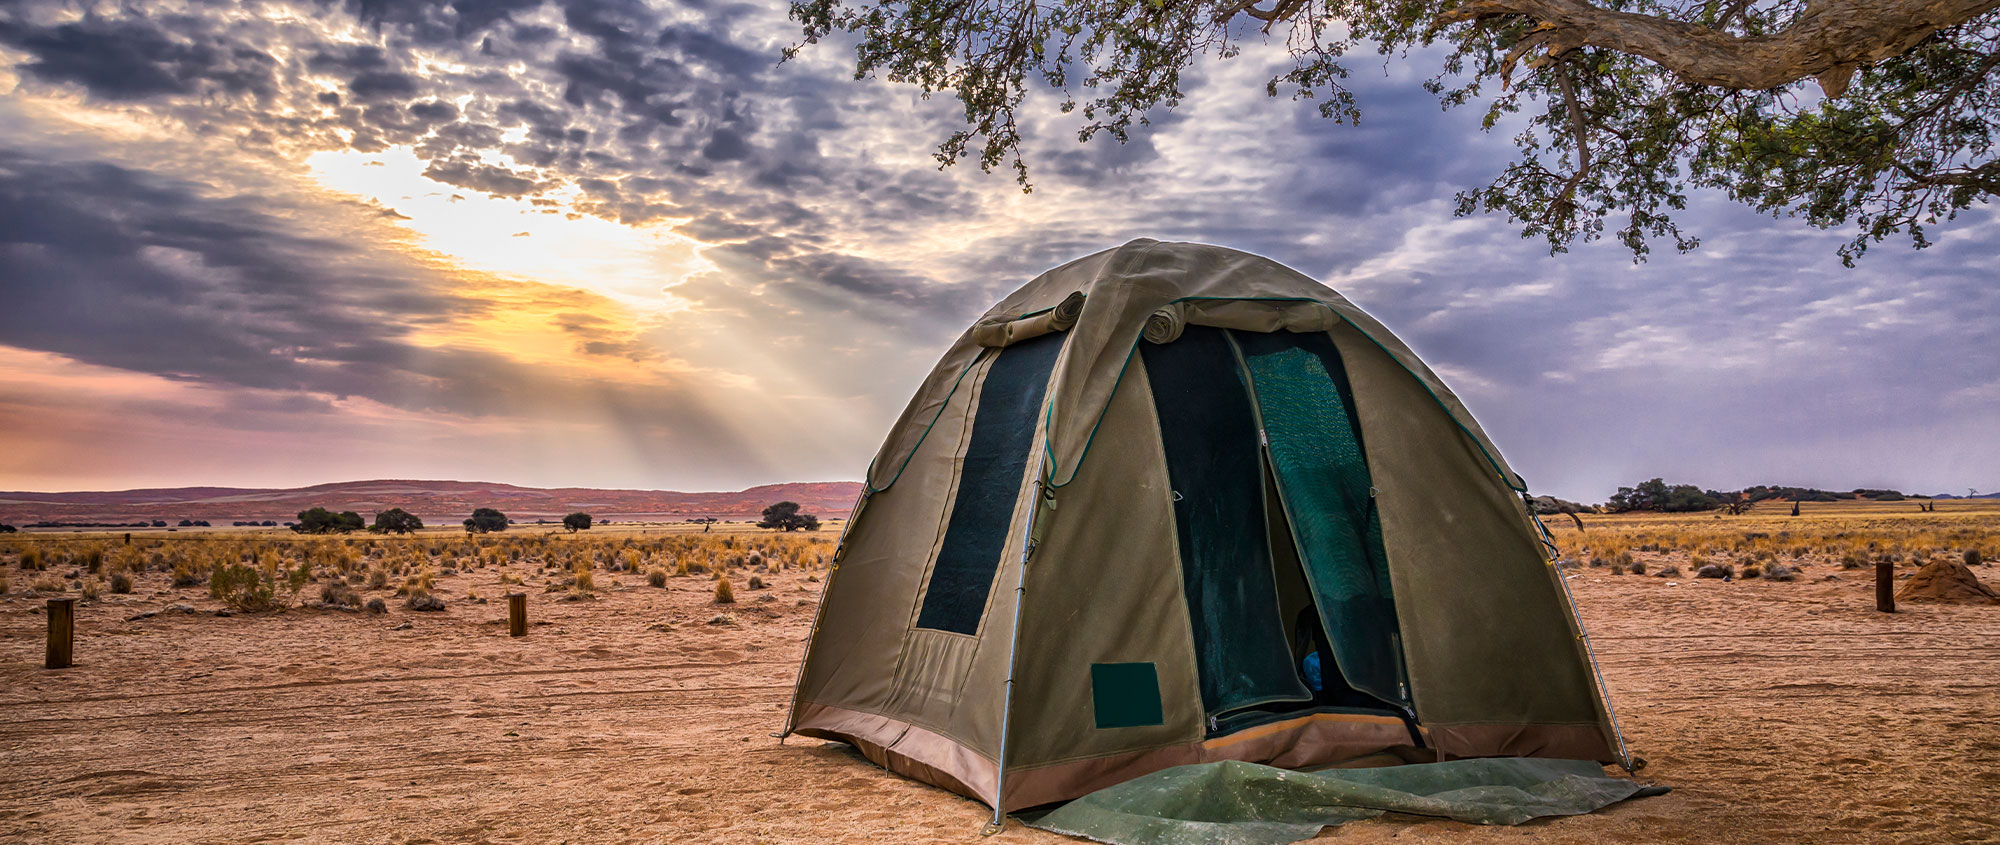 Dome tent, Namibia